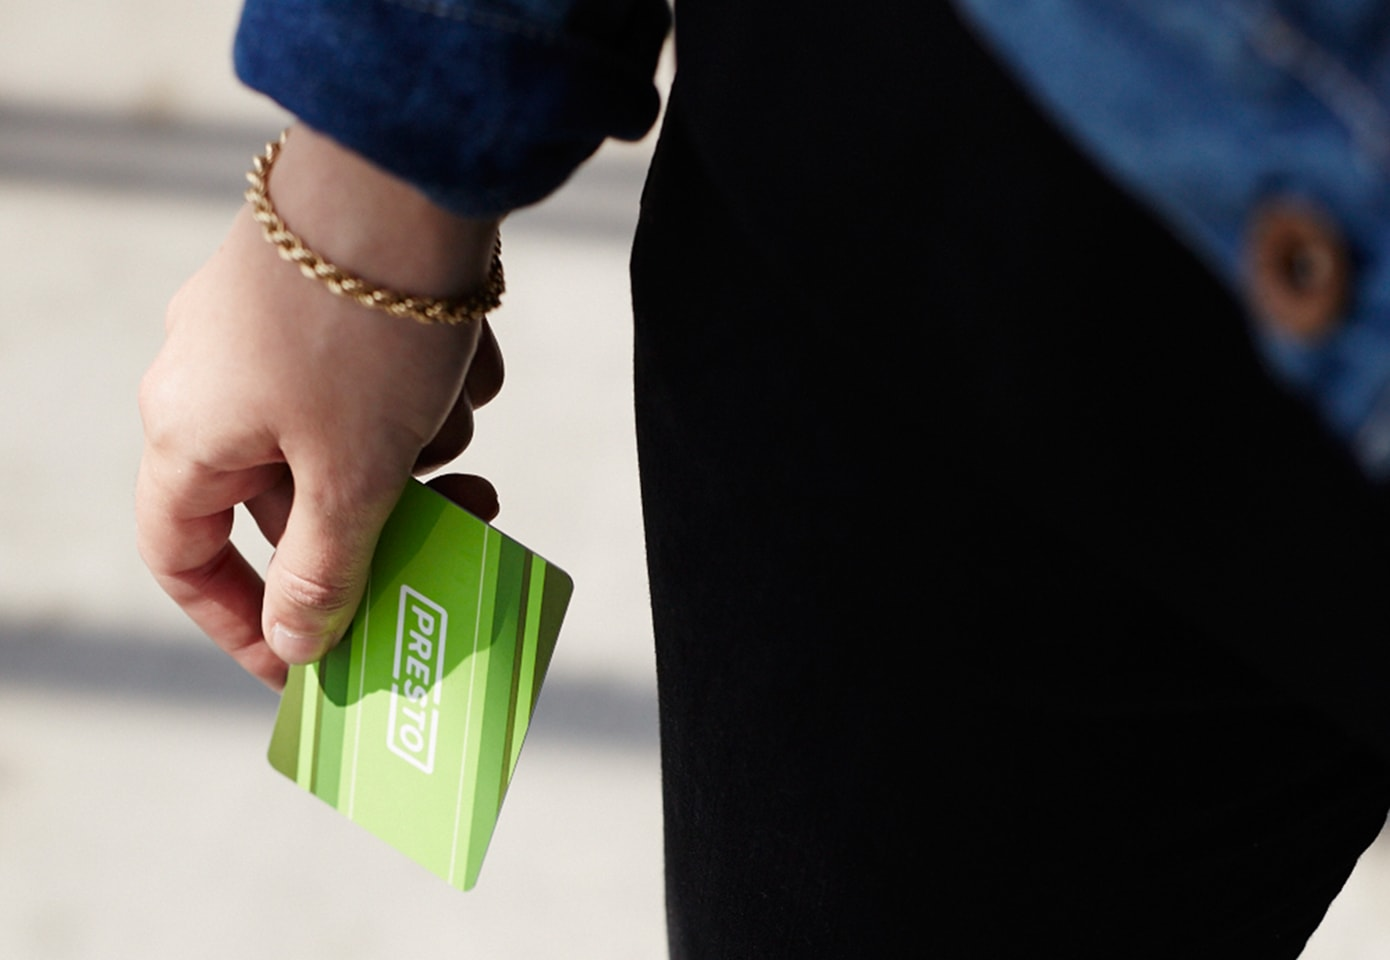 Customer holding a PRESTO card